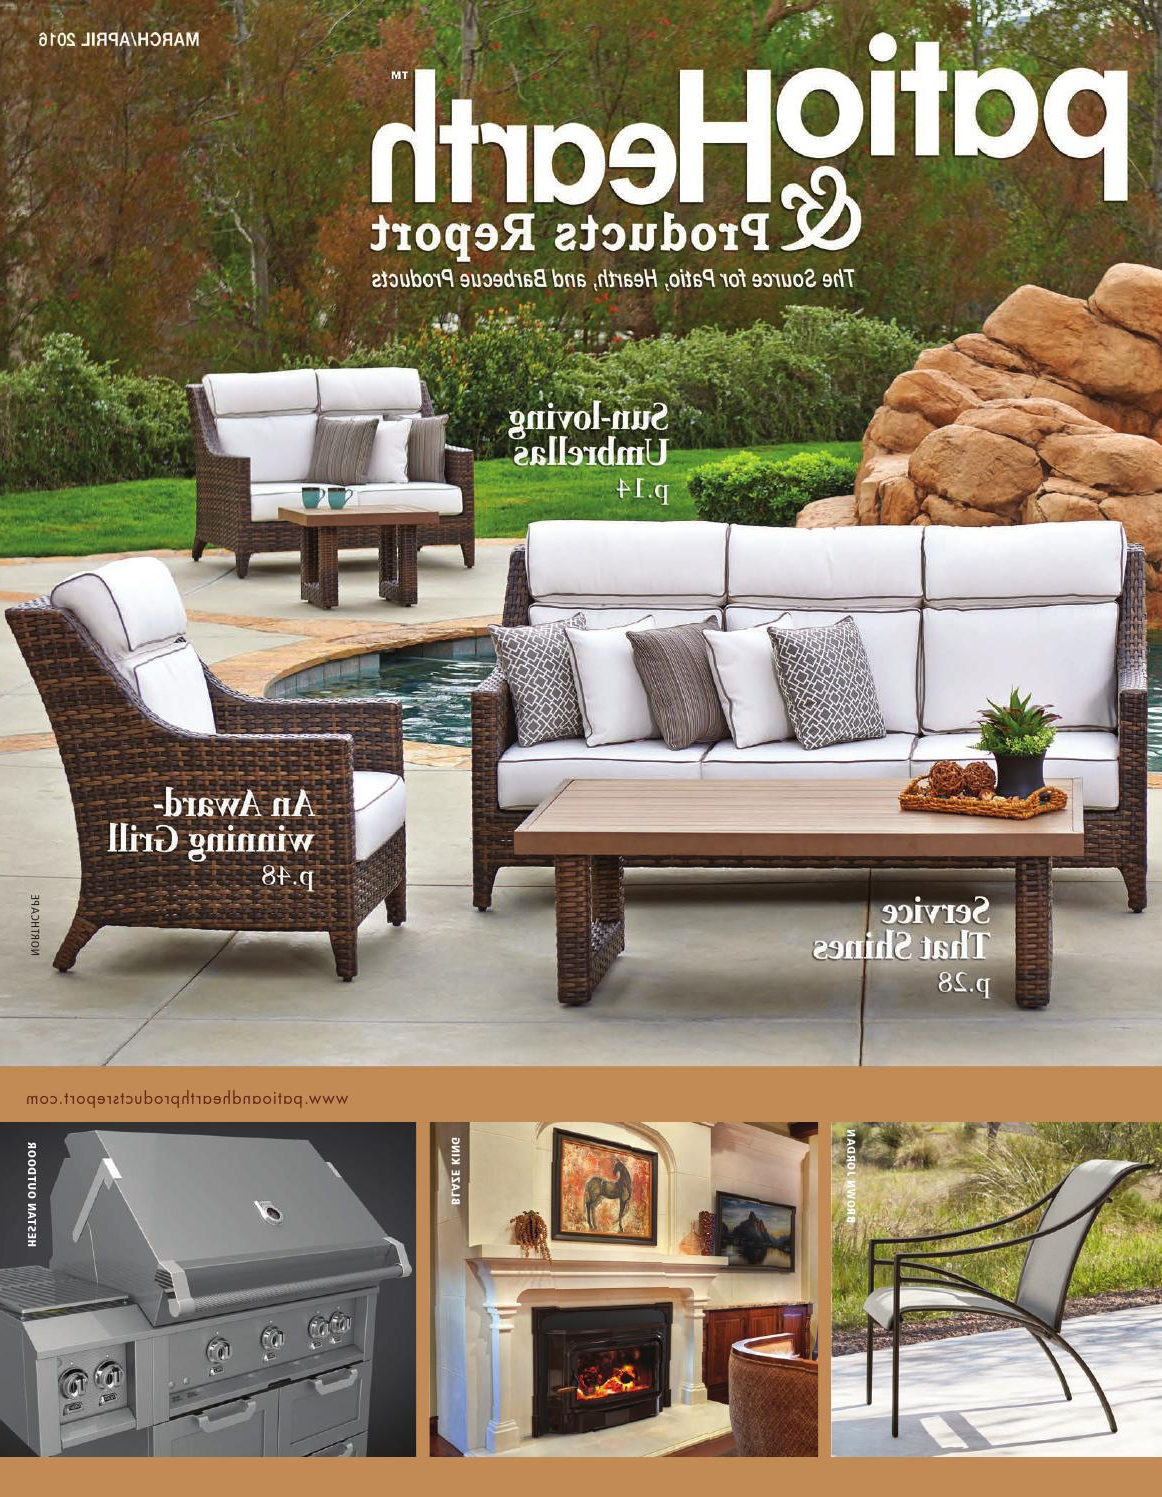 Alexander Elastic Rectangular Market Sunbrella Umbrellas Inside 2020 Patio & Hearth Products Report March April 2016peninsula Media (View 20 of 20)